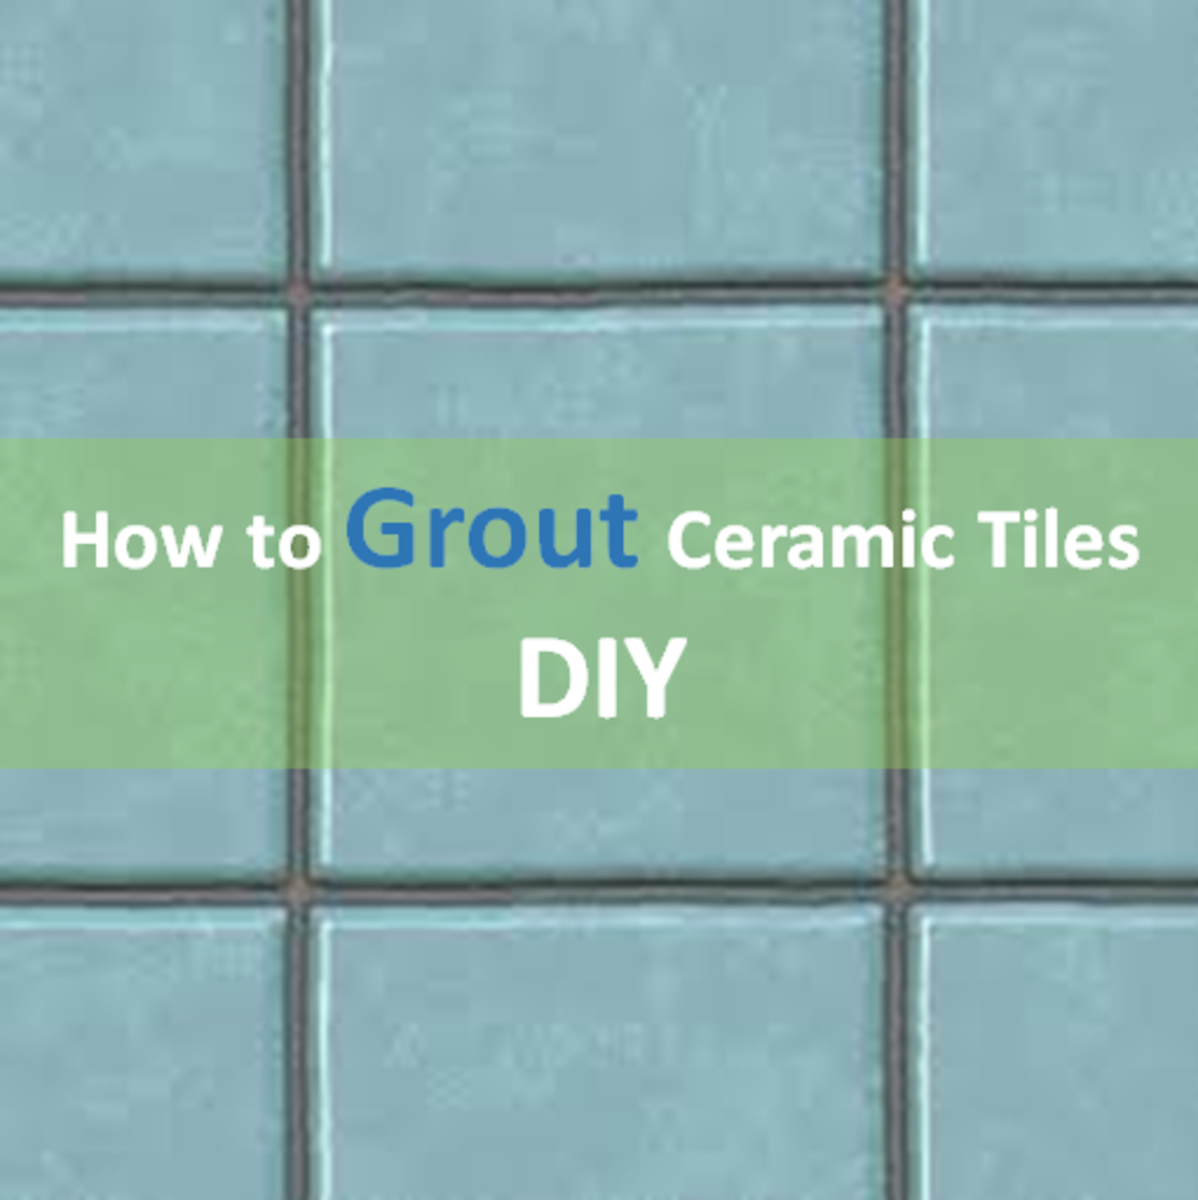 How to Apply Ceramic Tile Grout (Do-It-Yourself)